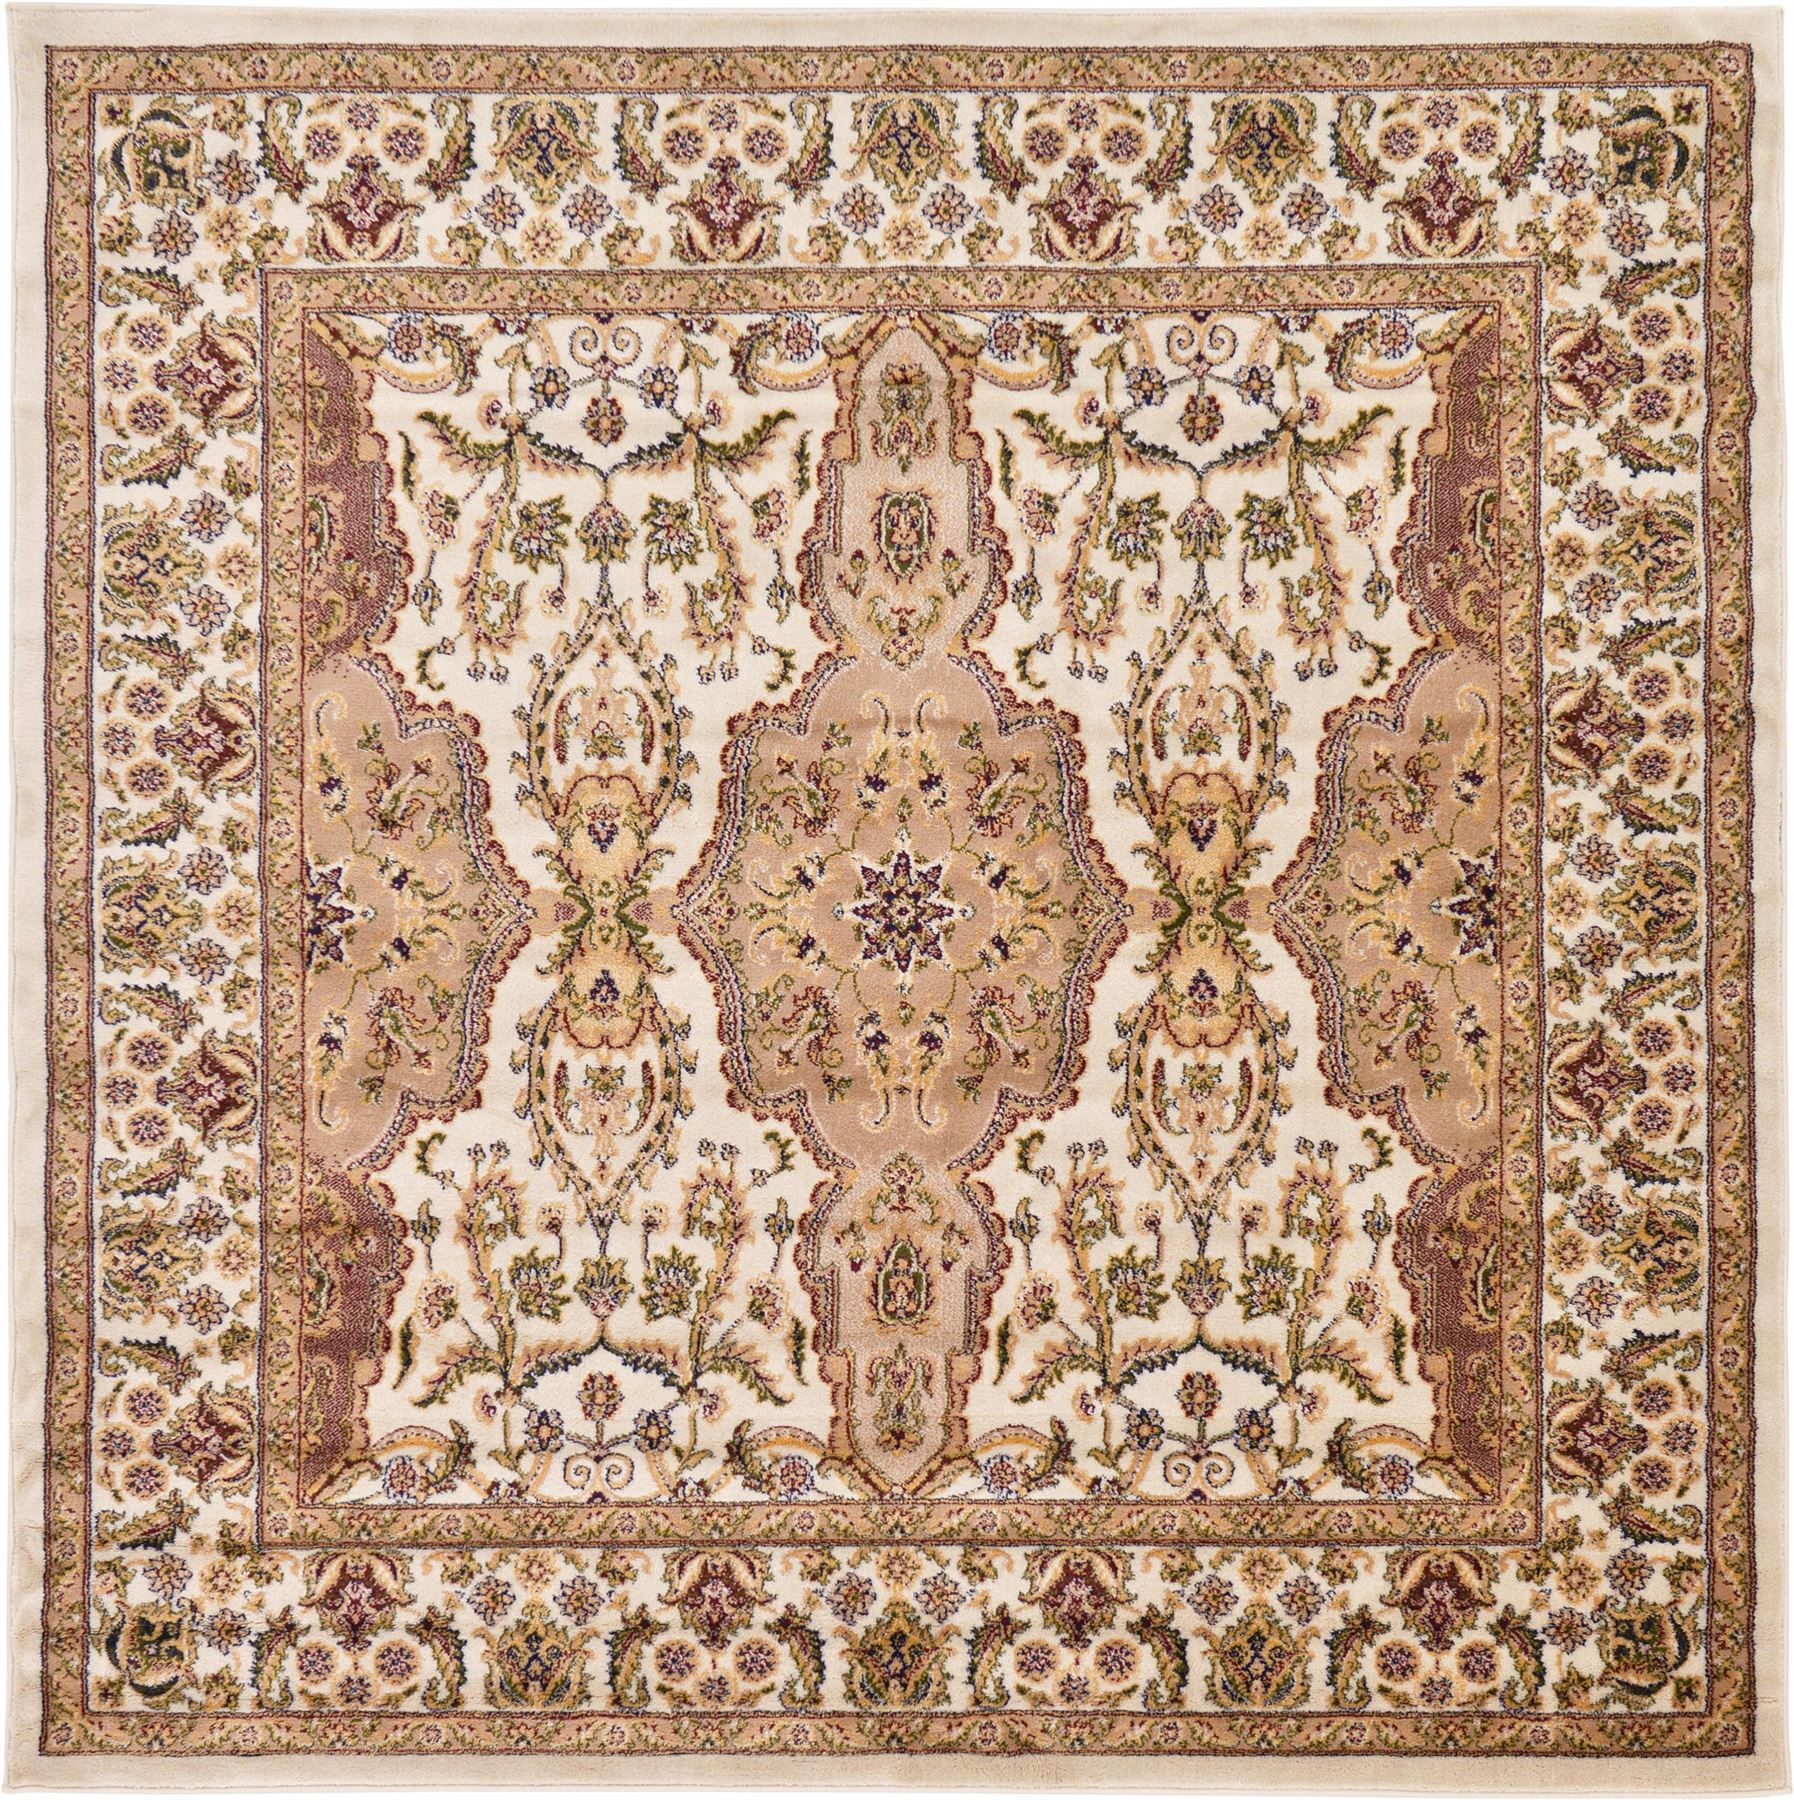 Traditional persian design rug unique carpets different for Area carpets and rugs